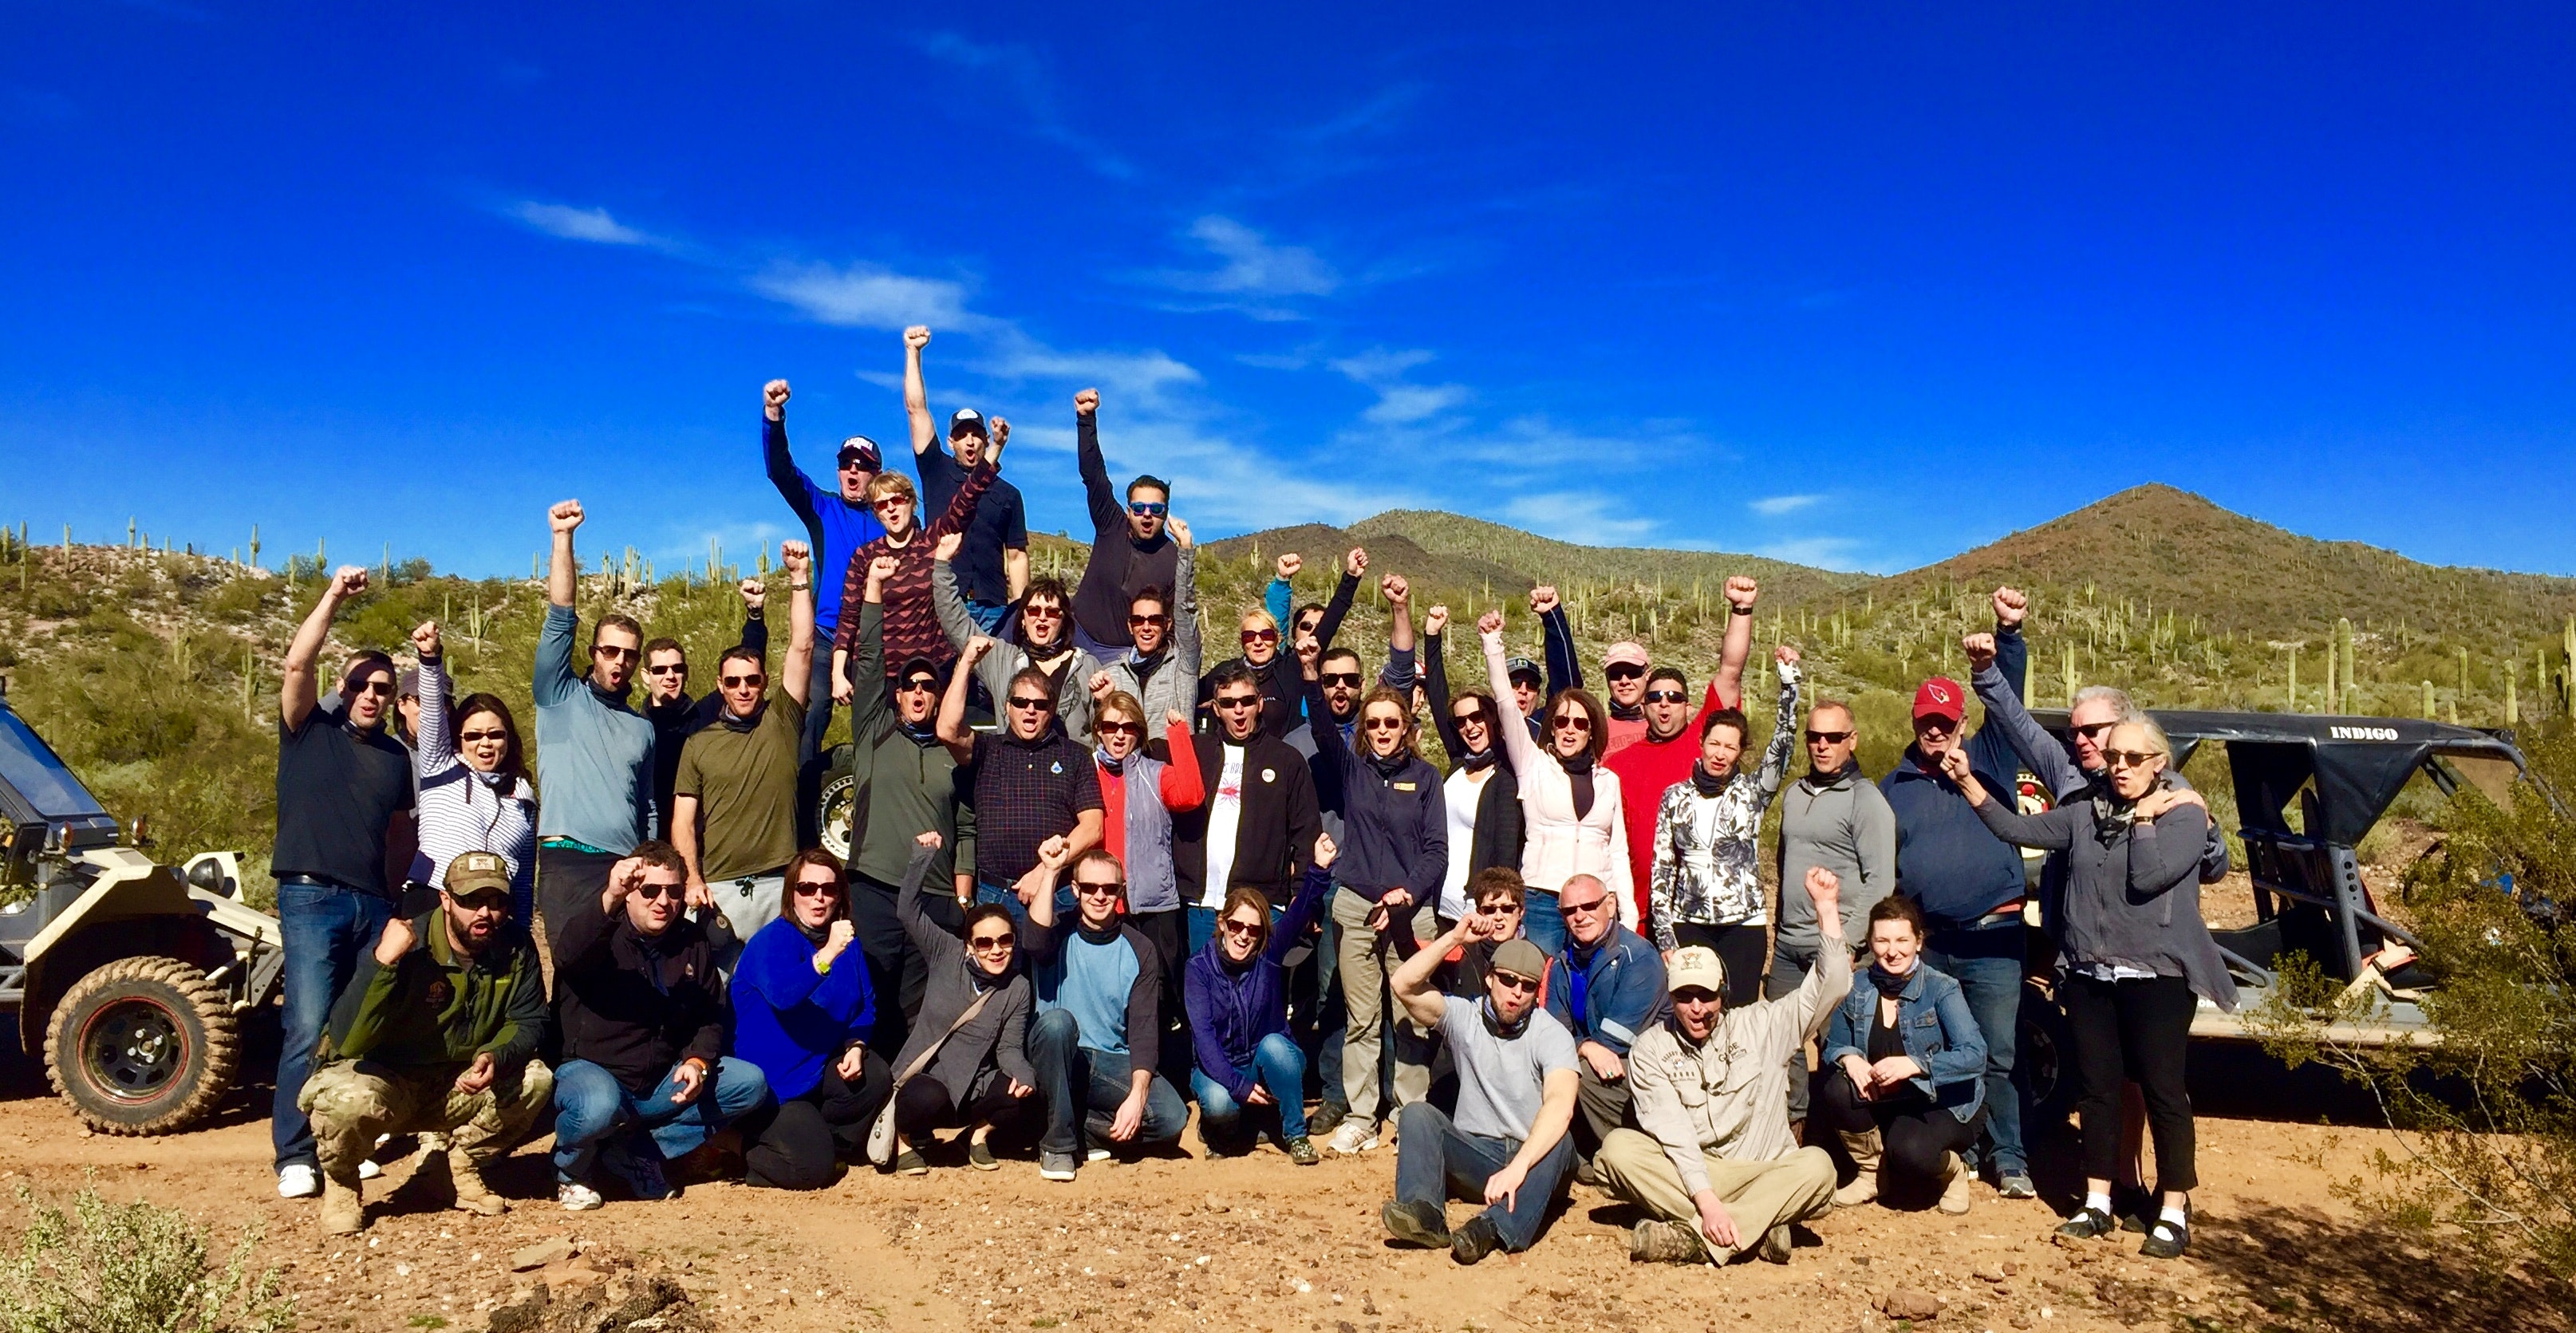 team building and group adventures - desert wolf tours - scottsdale - phoenix